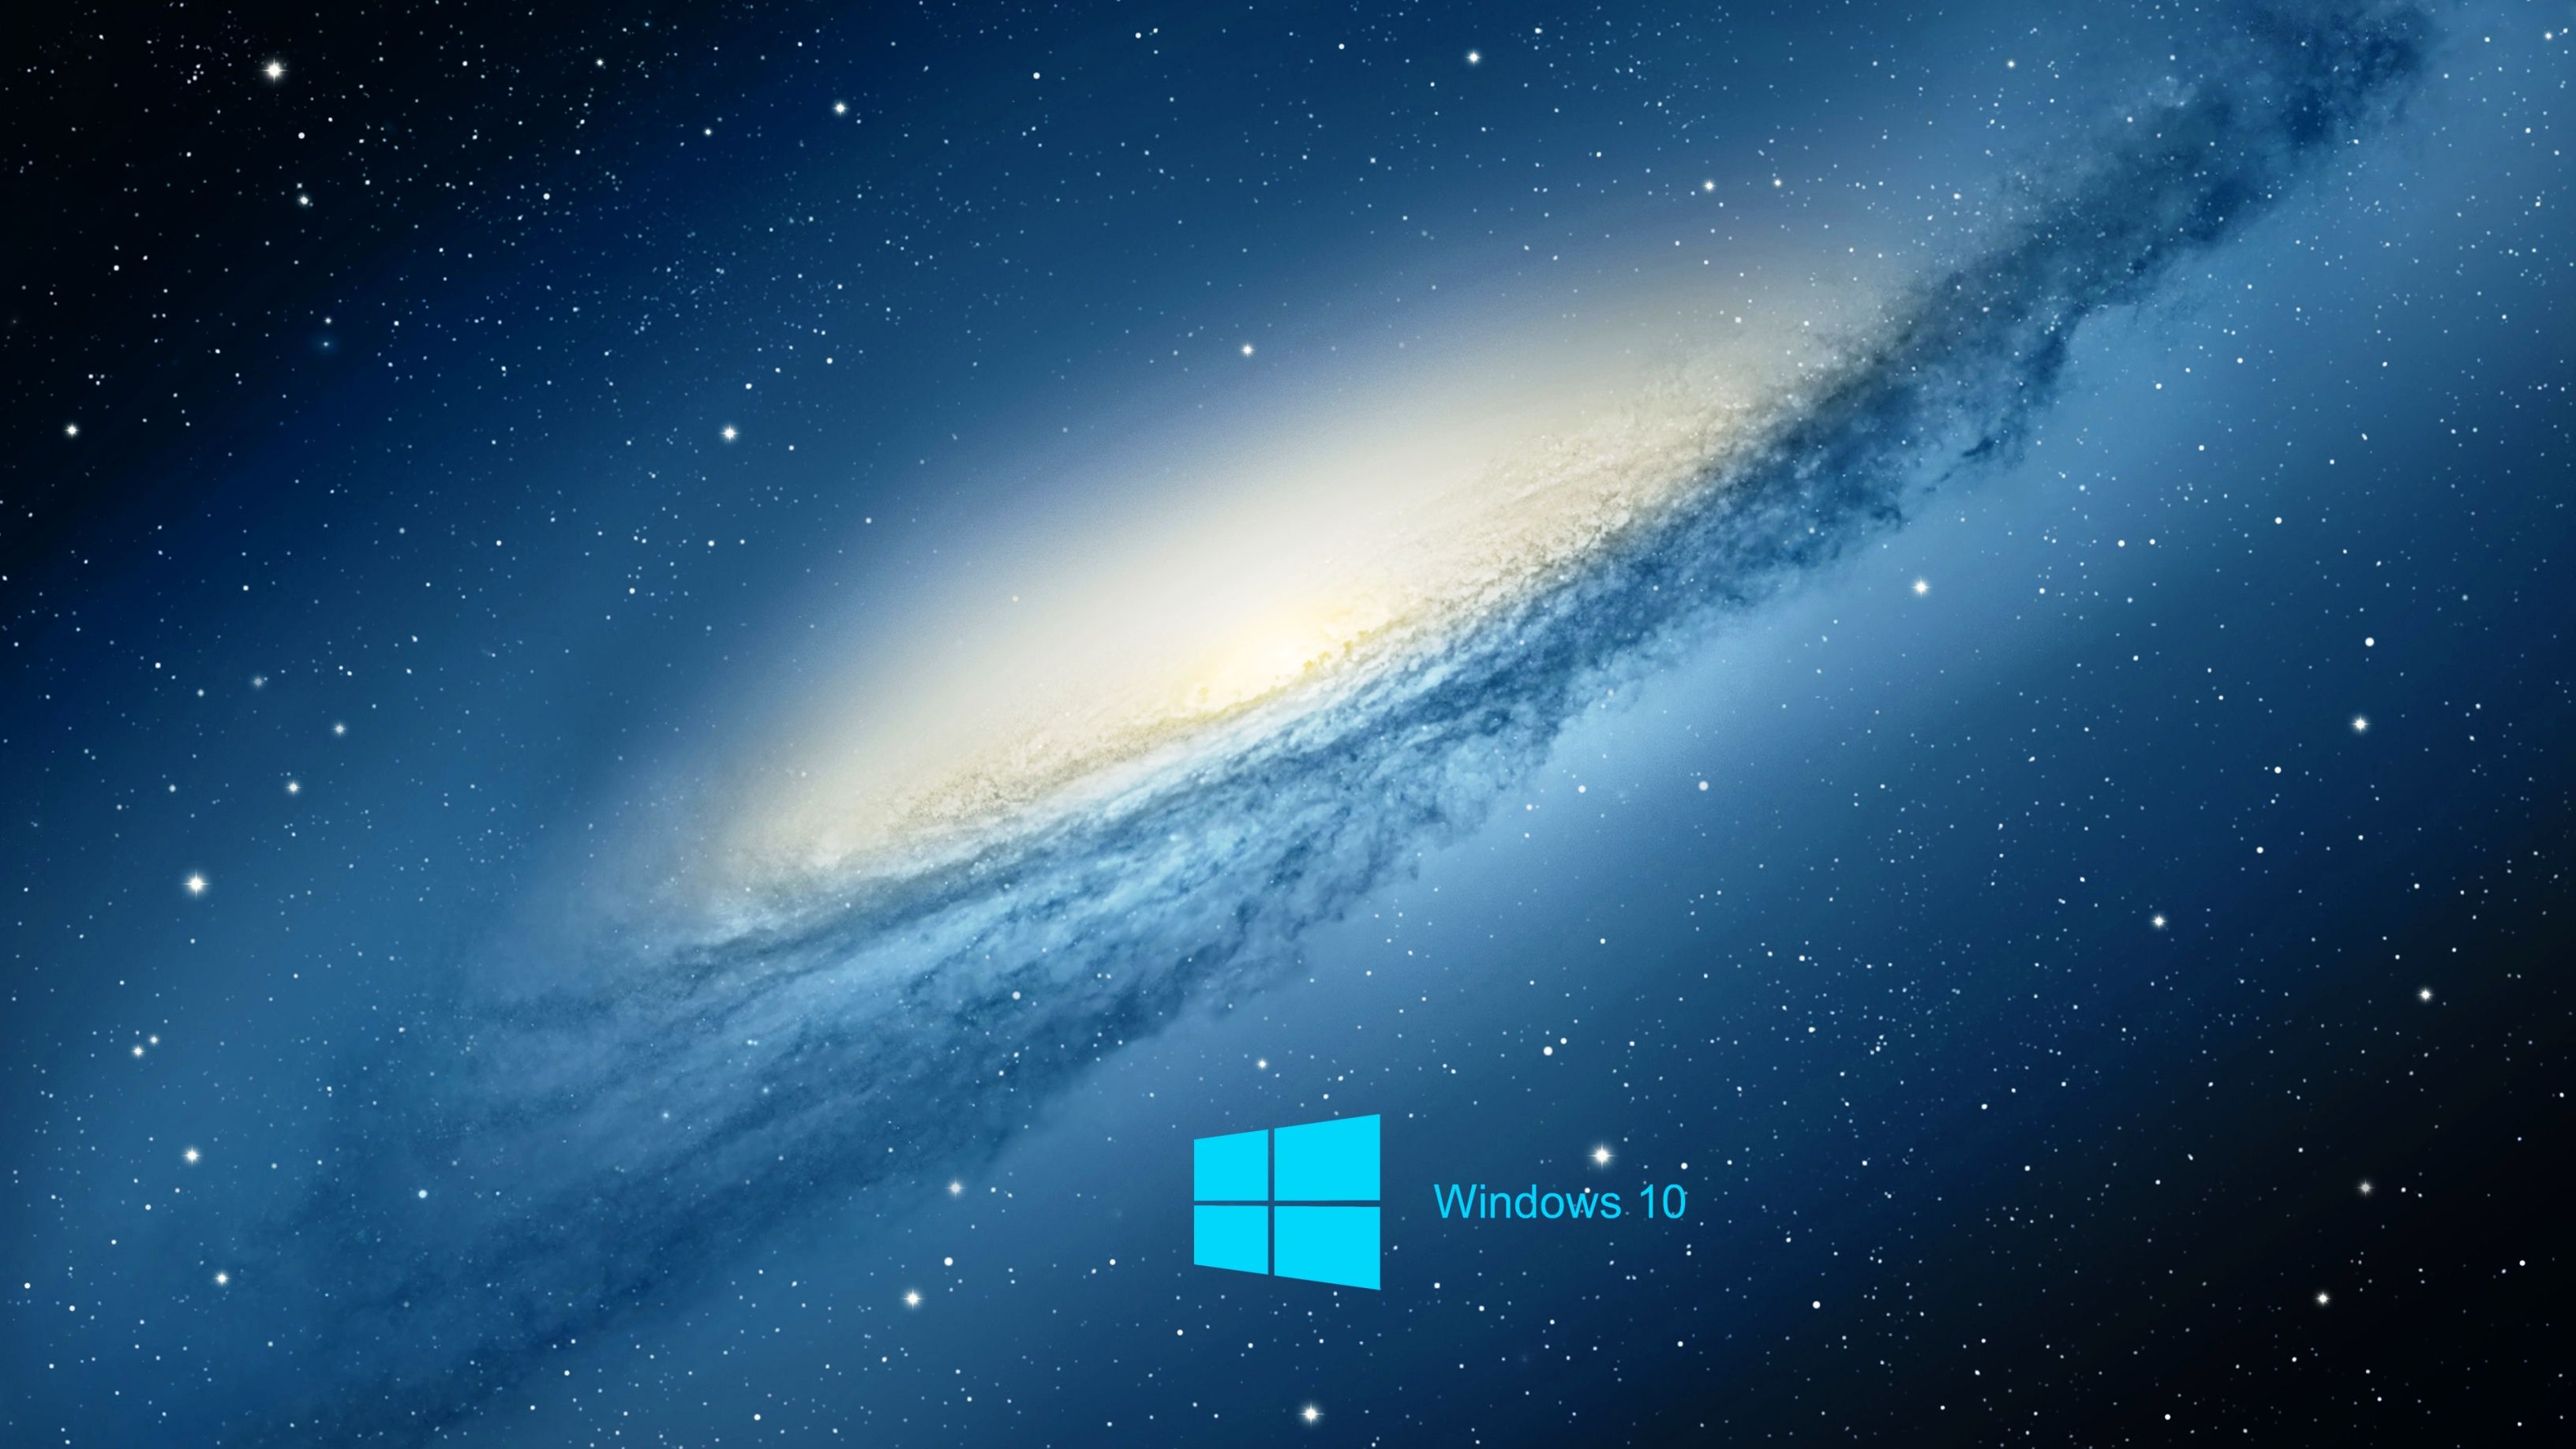 Windows 10 Ultra Hd Wallpaper Attractive Wallpapers Os X Mountain Lion Windows 10